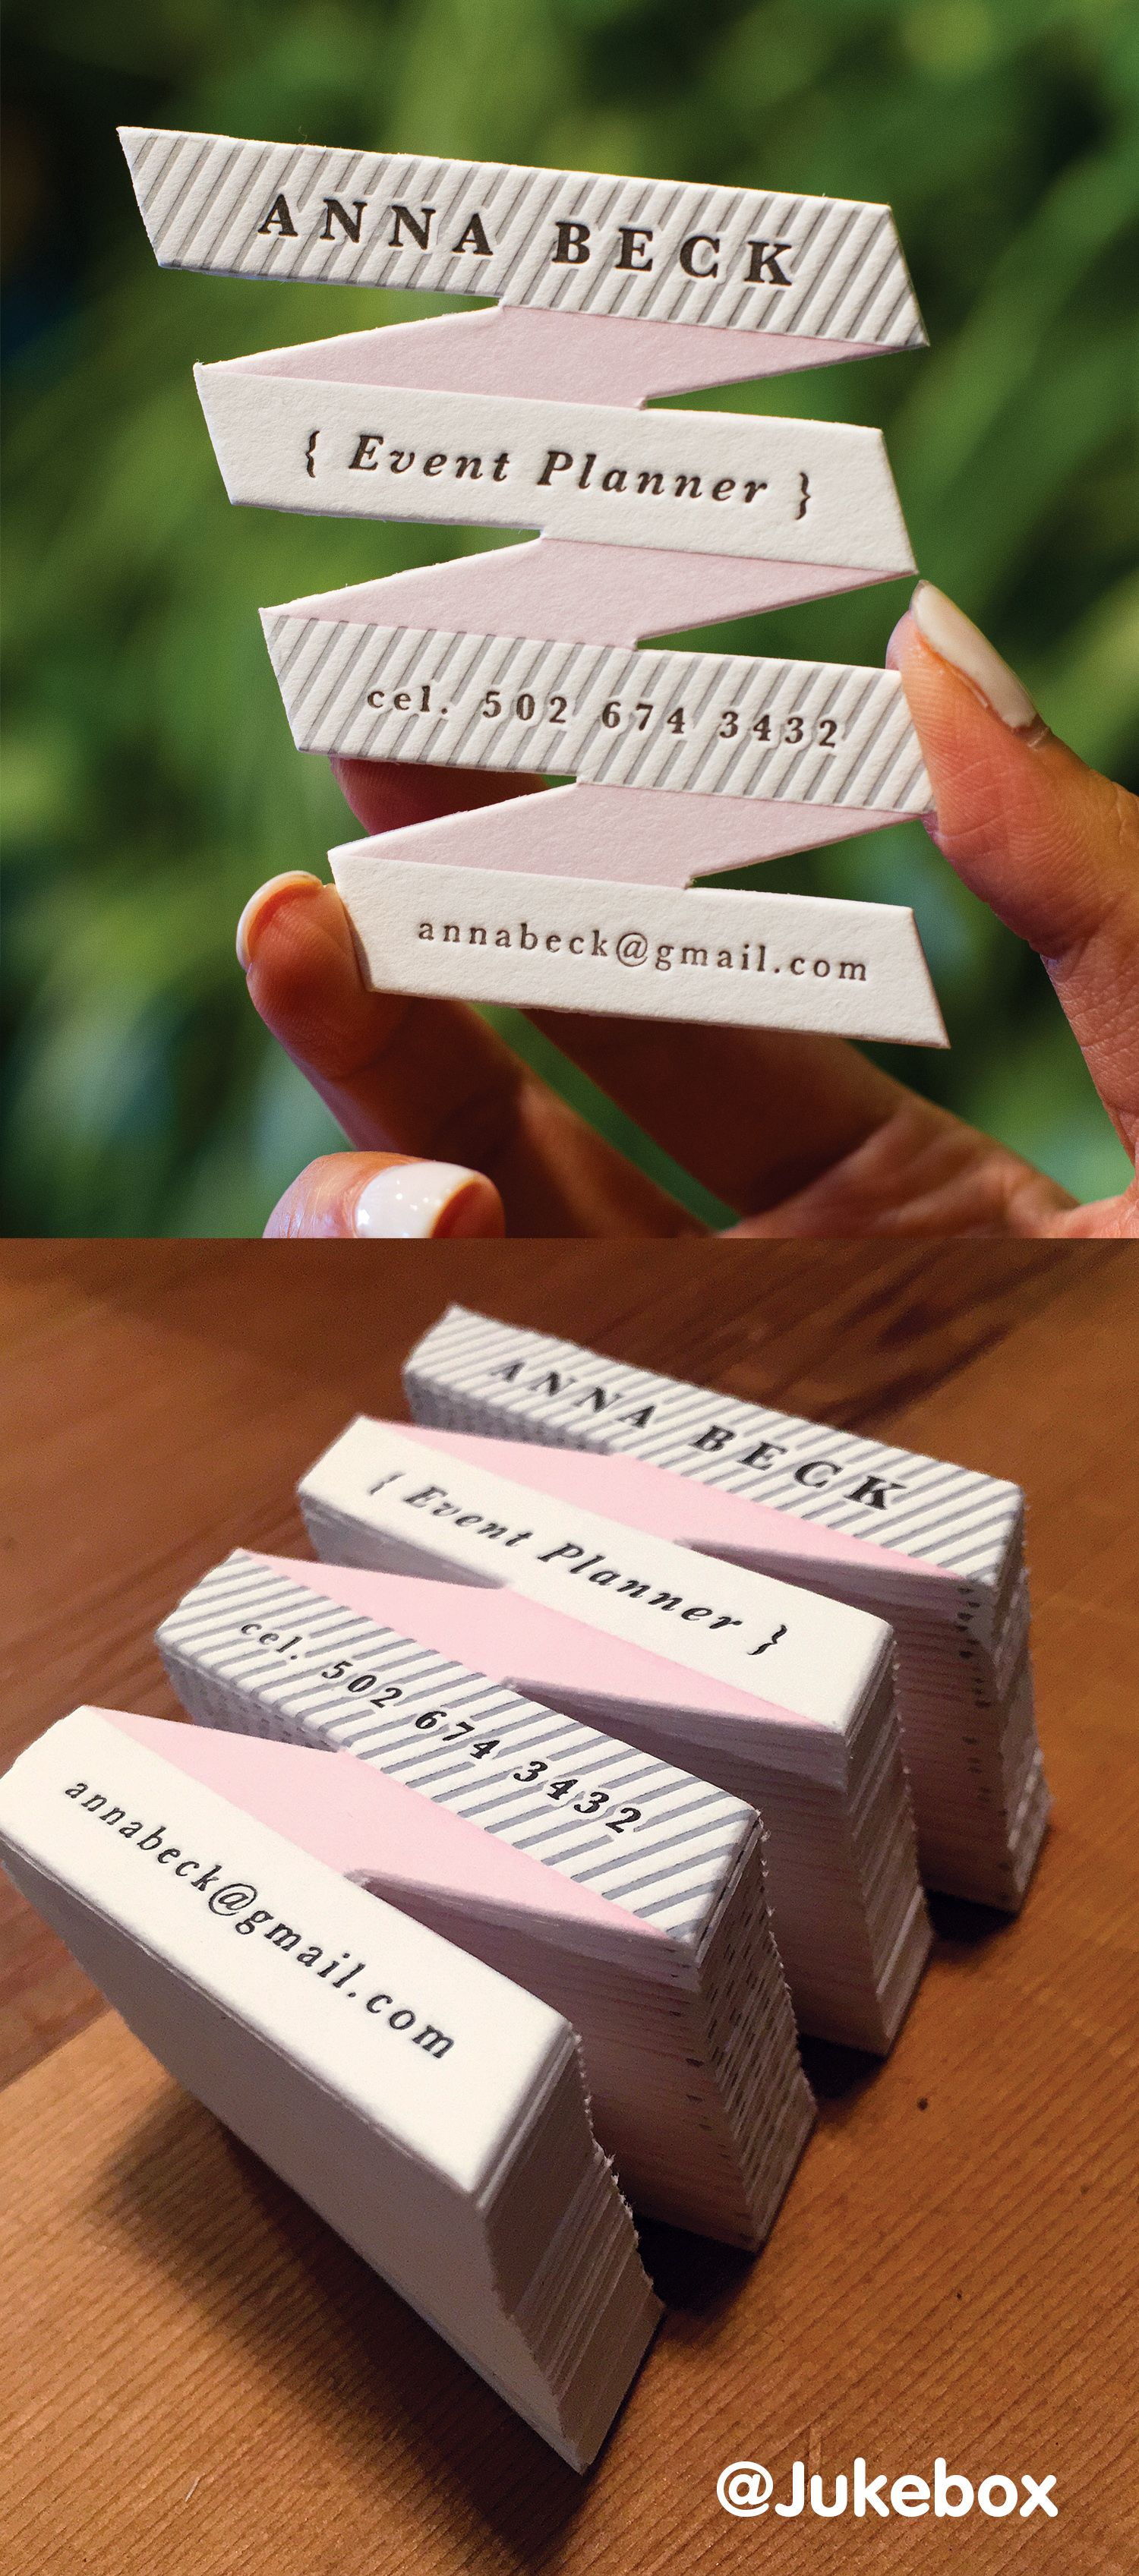 Letterpress business cards personalize your business cards with letterpress business cards personalize your business cards with a custom die cut shape magicingreecefo Images